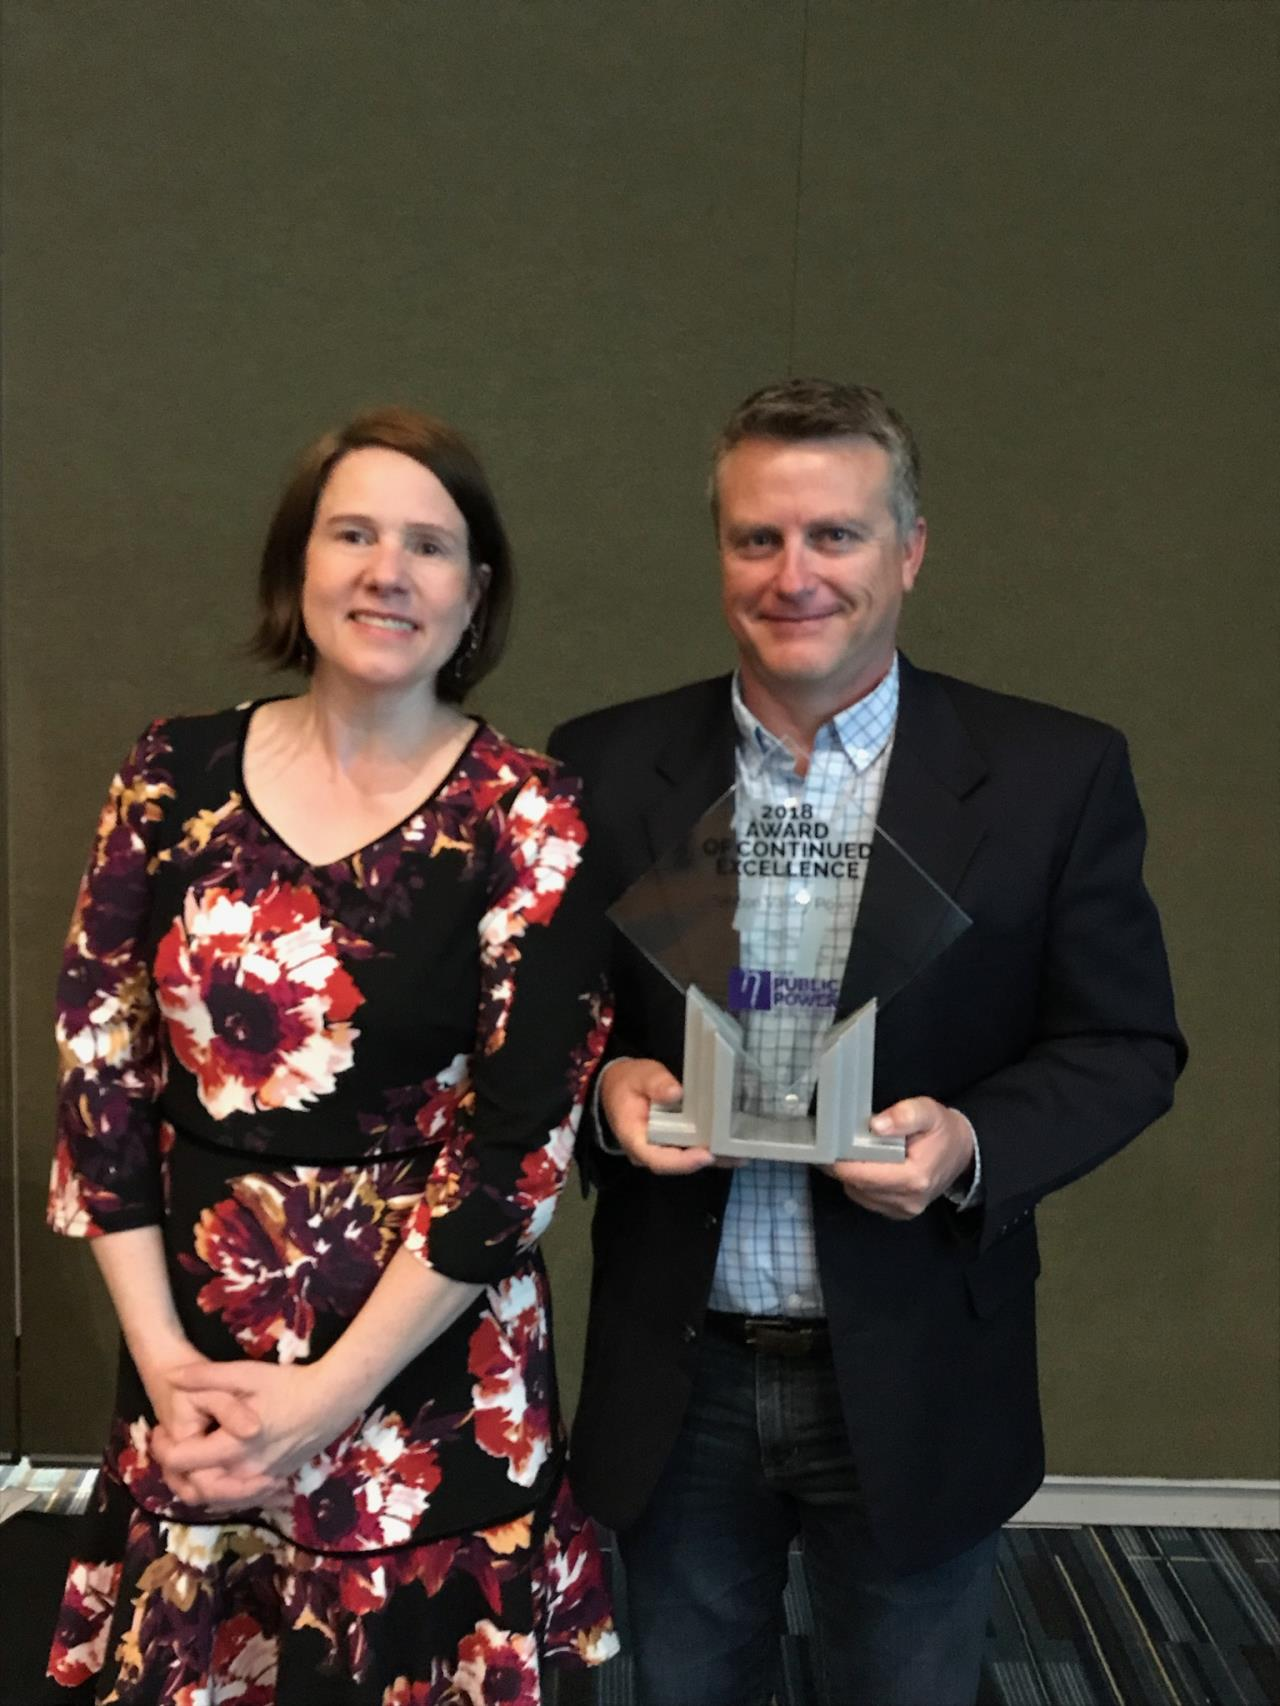 SVP Receives 2018 Award of Continued Excellence